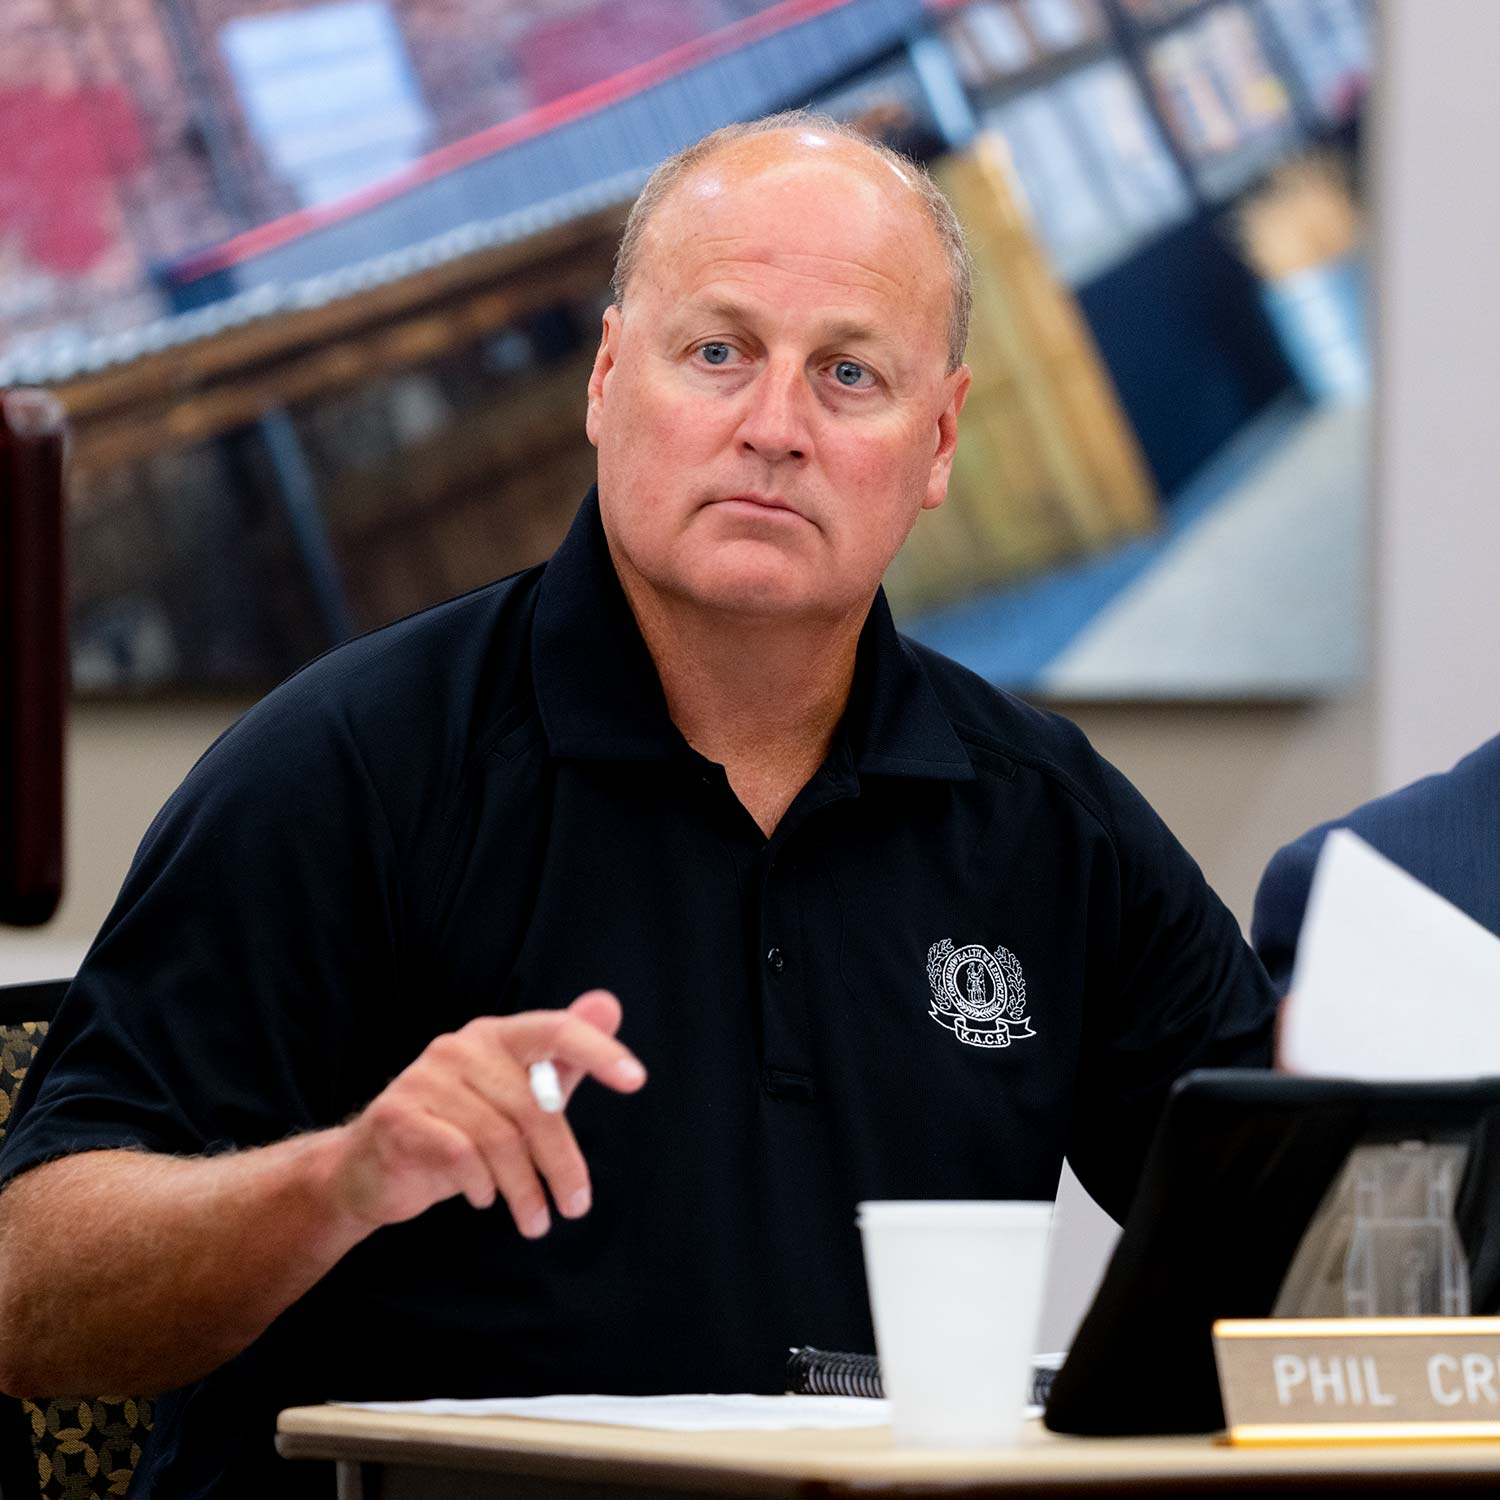 Kentucky Law Enforcement Council Executive Director Phil Crumpton during the Aug. 8 meeting.  (Photo by Jim Robertson)